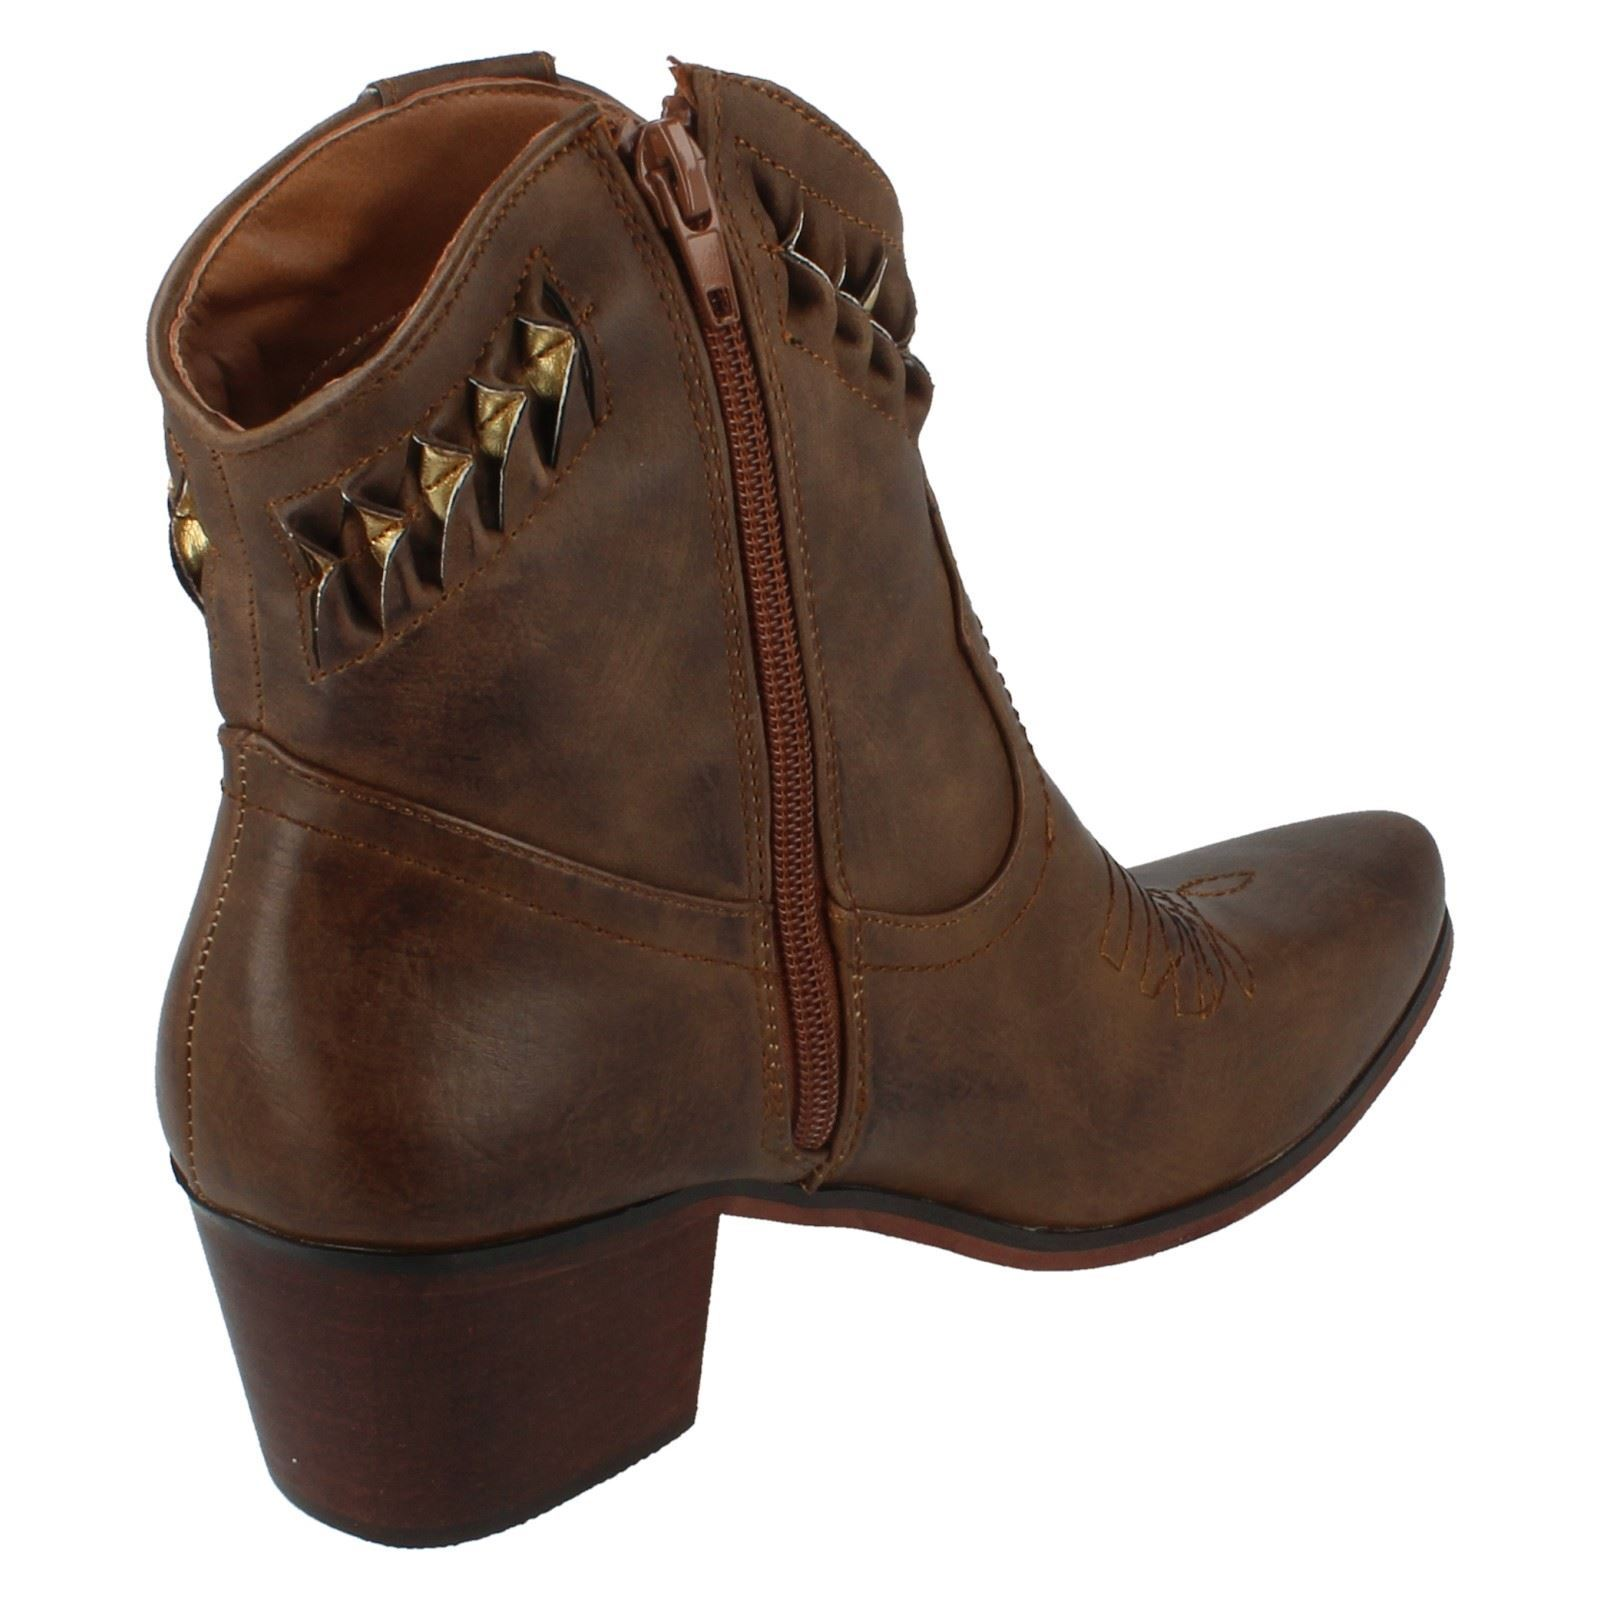 DOWN TO STYLE EARTH F5R0944 SMART COWBOY STYLE TO LADIES ANKLE Stiefel WARM WINTER ZIP UP a86cd5